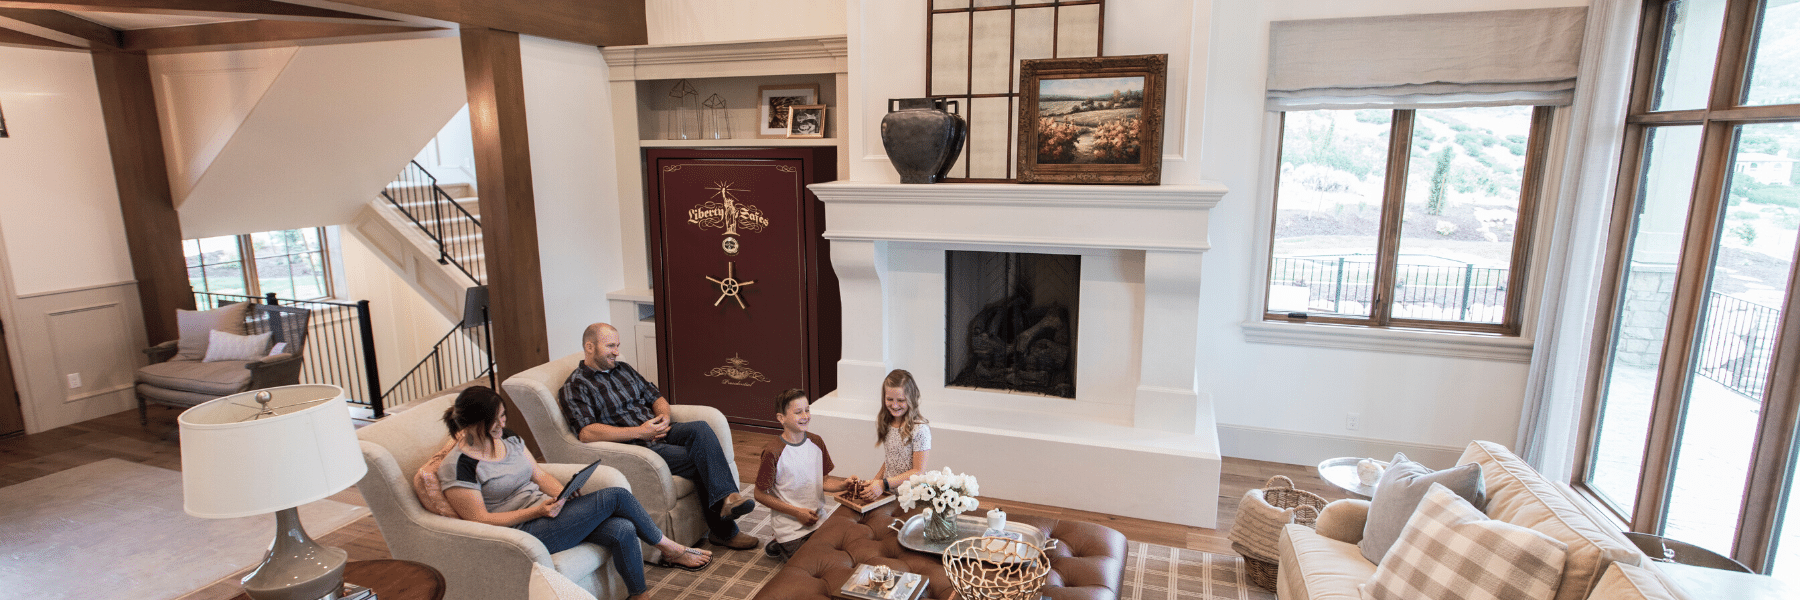 family sitting in living room